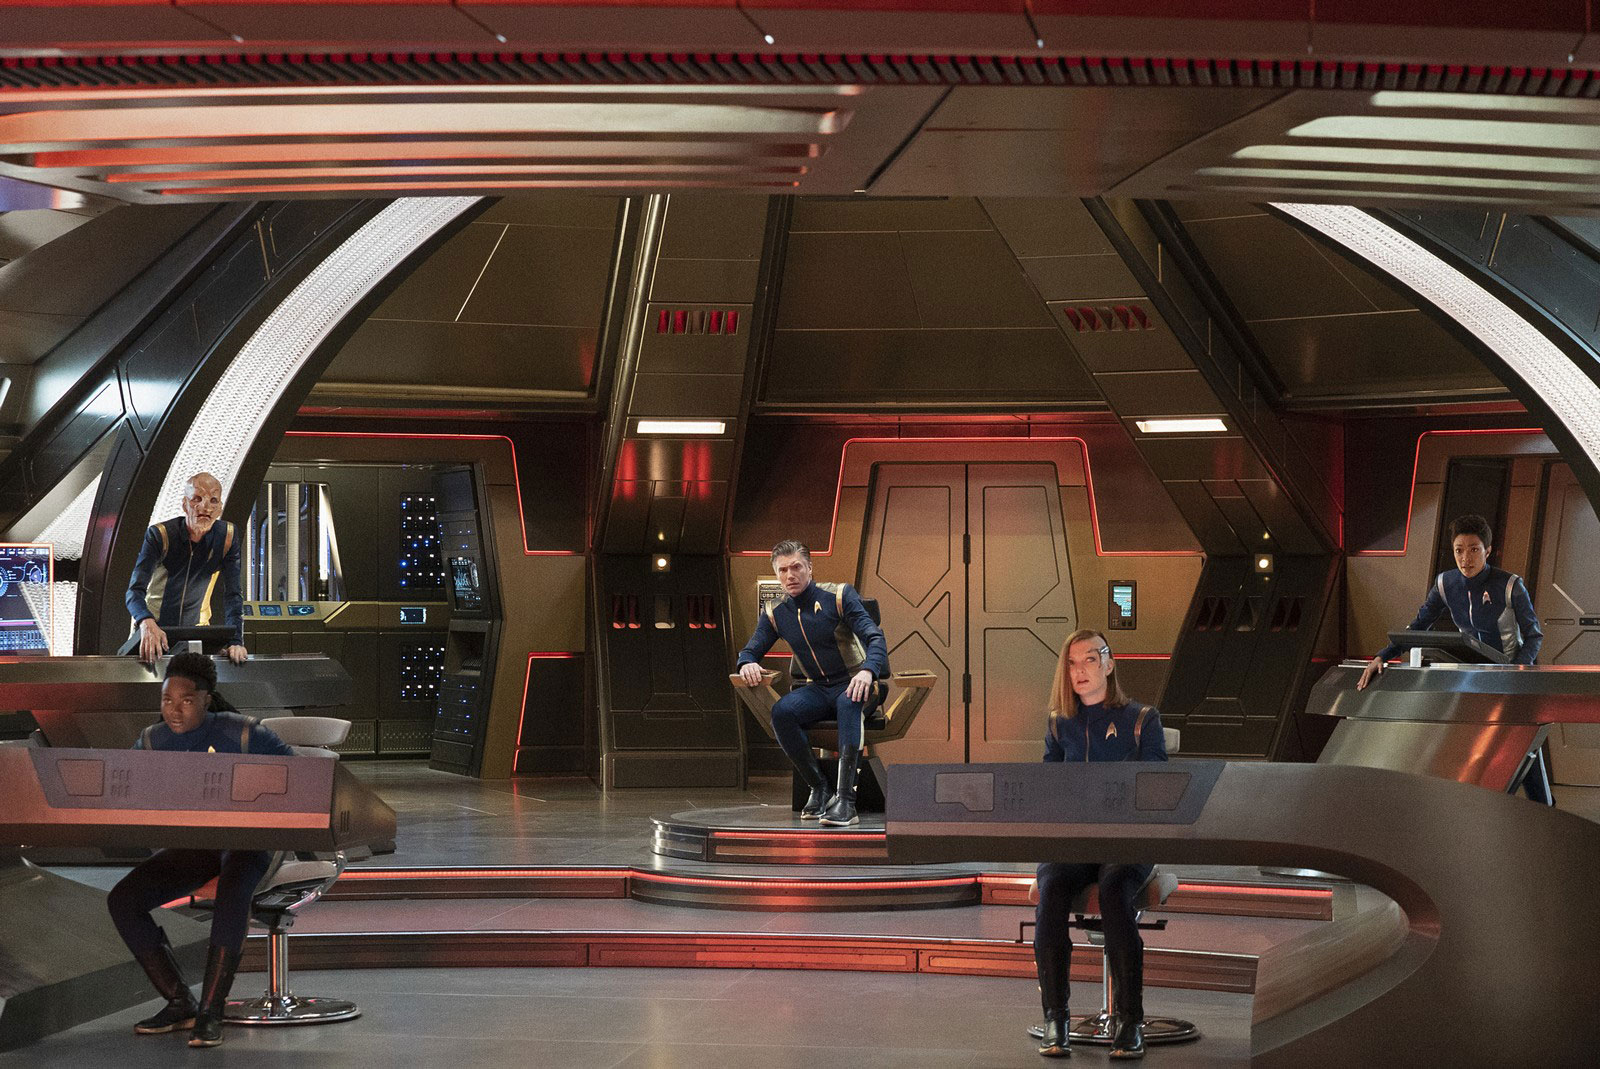 Oyin Oladejo as Joann Owosekun, Doug Jones as Saru, Anson Mount as Captain Pike, Emily Coutts as Keyla Detmer and Sonequa Martin-Green as Burnham